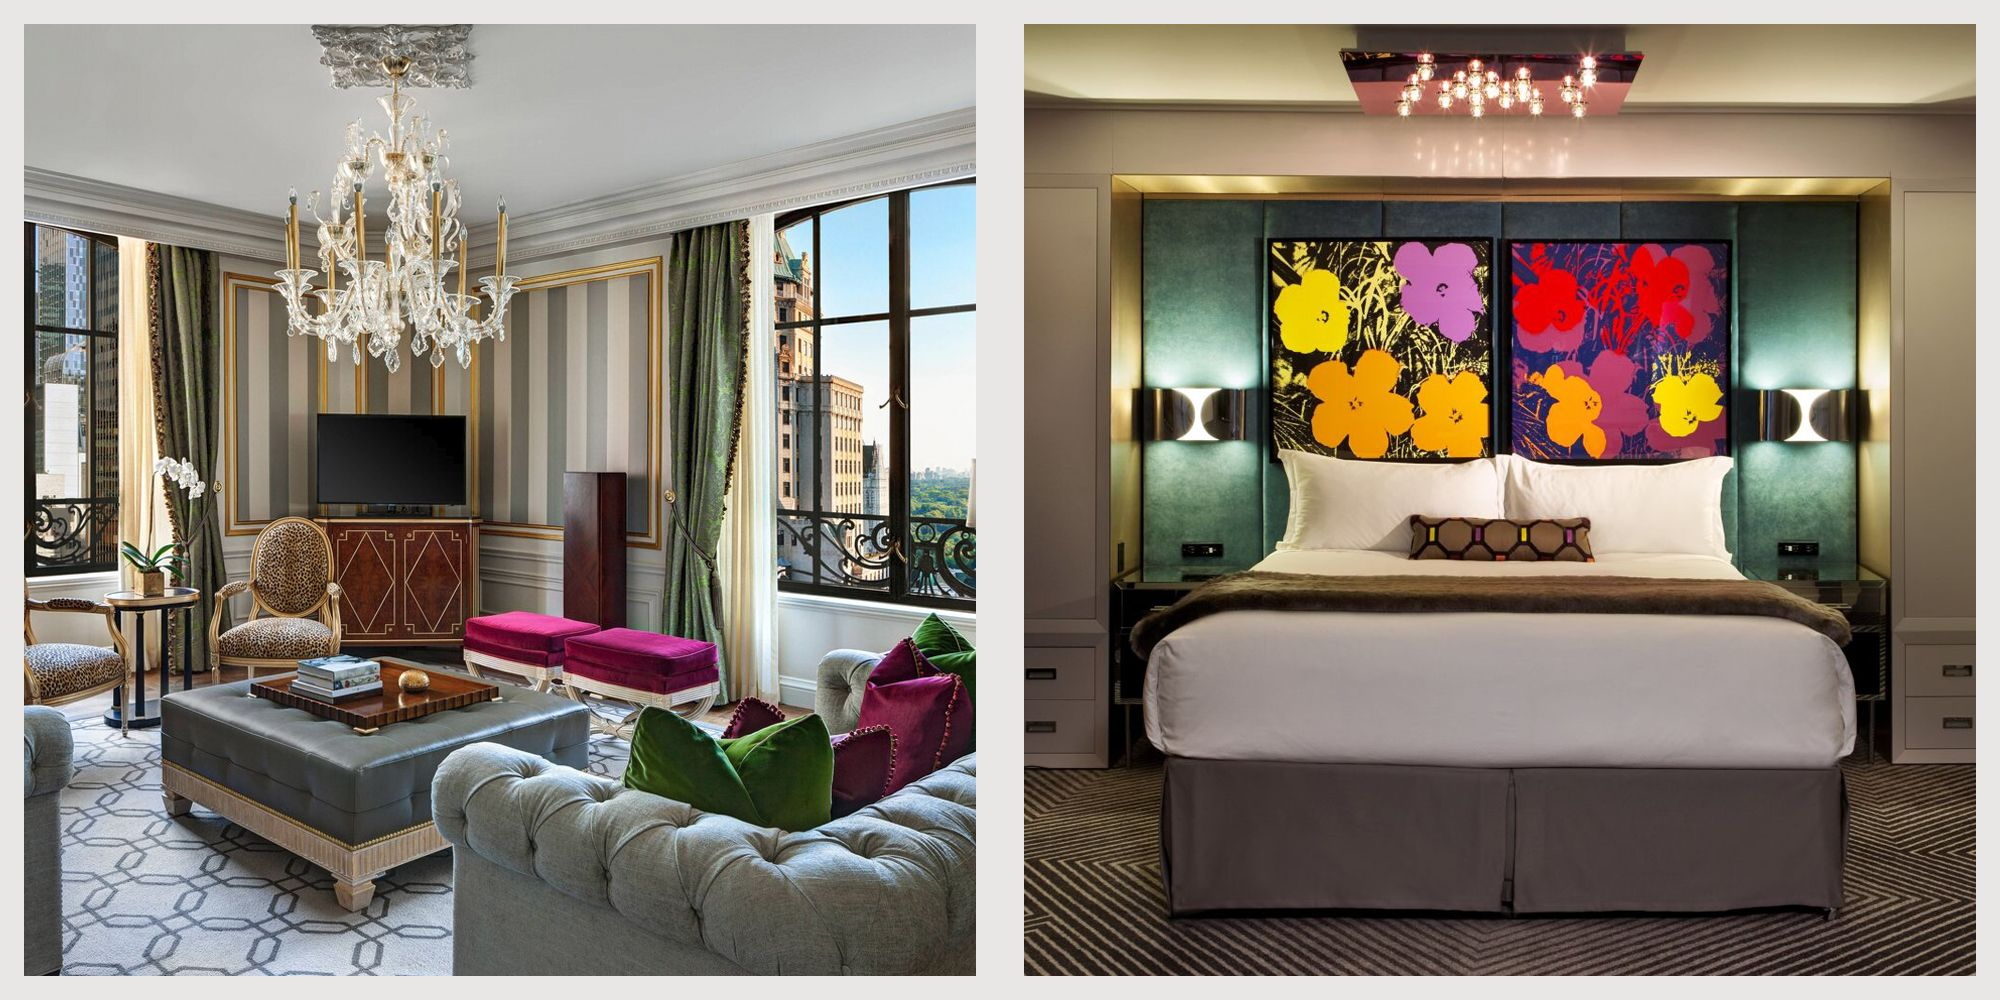 50 Best Luxury Hotels In Nyc 2021 Most Luxurious Nyc Places To Stay